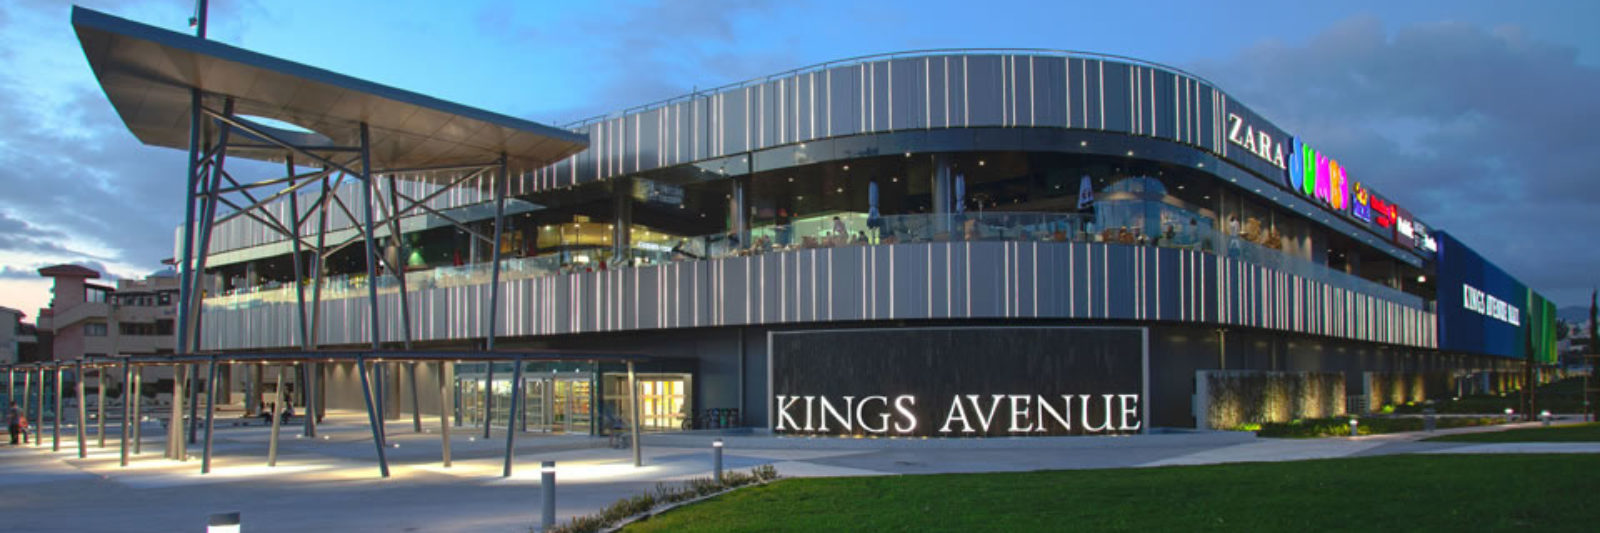 Kings Avenue mall Pafos